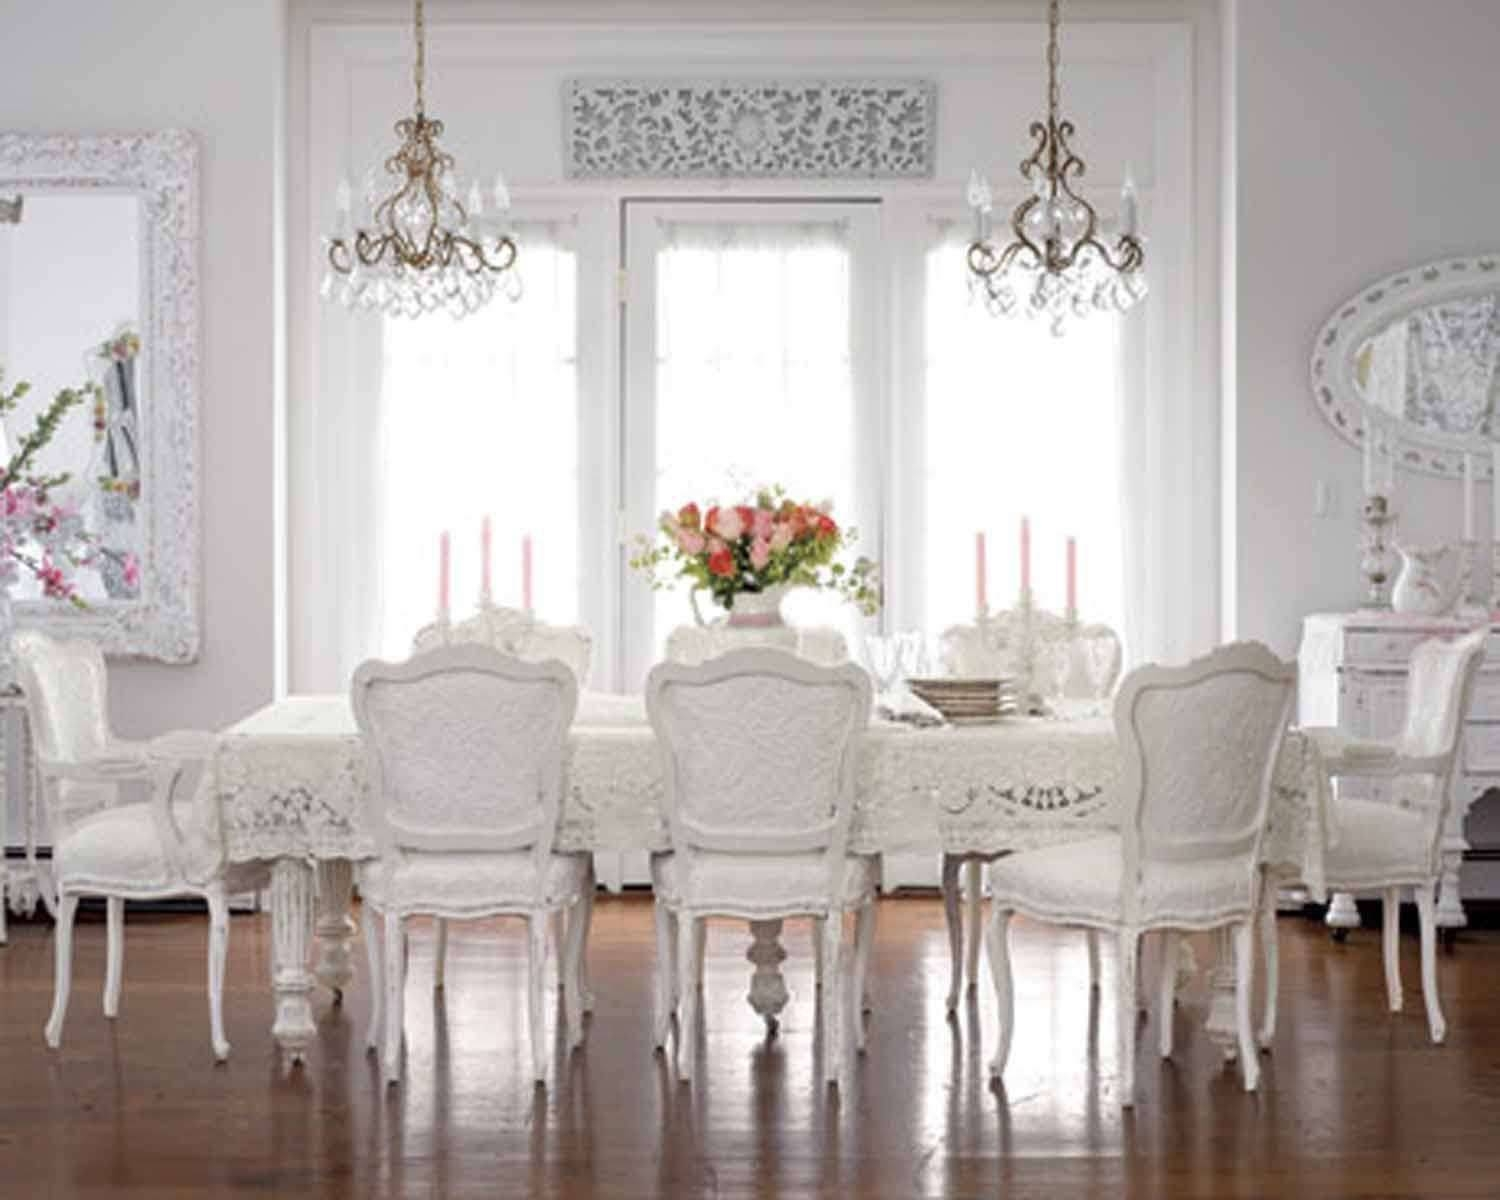 Welcoming Shabby Chic Dining Room With Floor Mirror And White regarding Shabby Chic Floor Mirrors (Image 24 of 25)